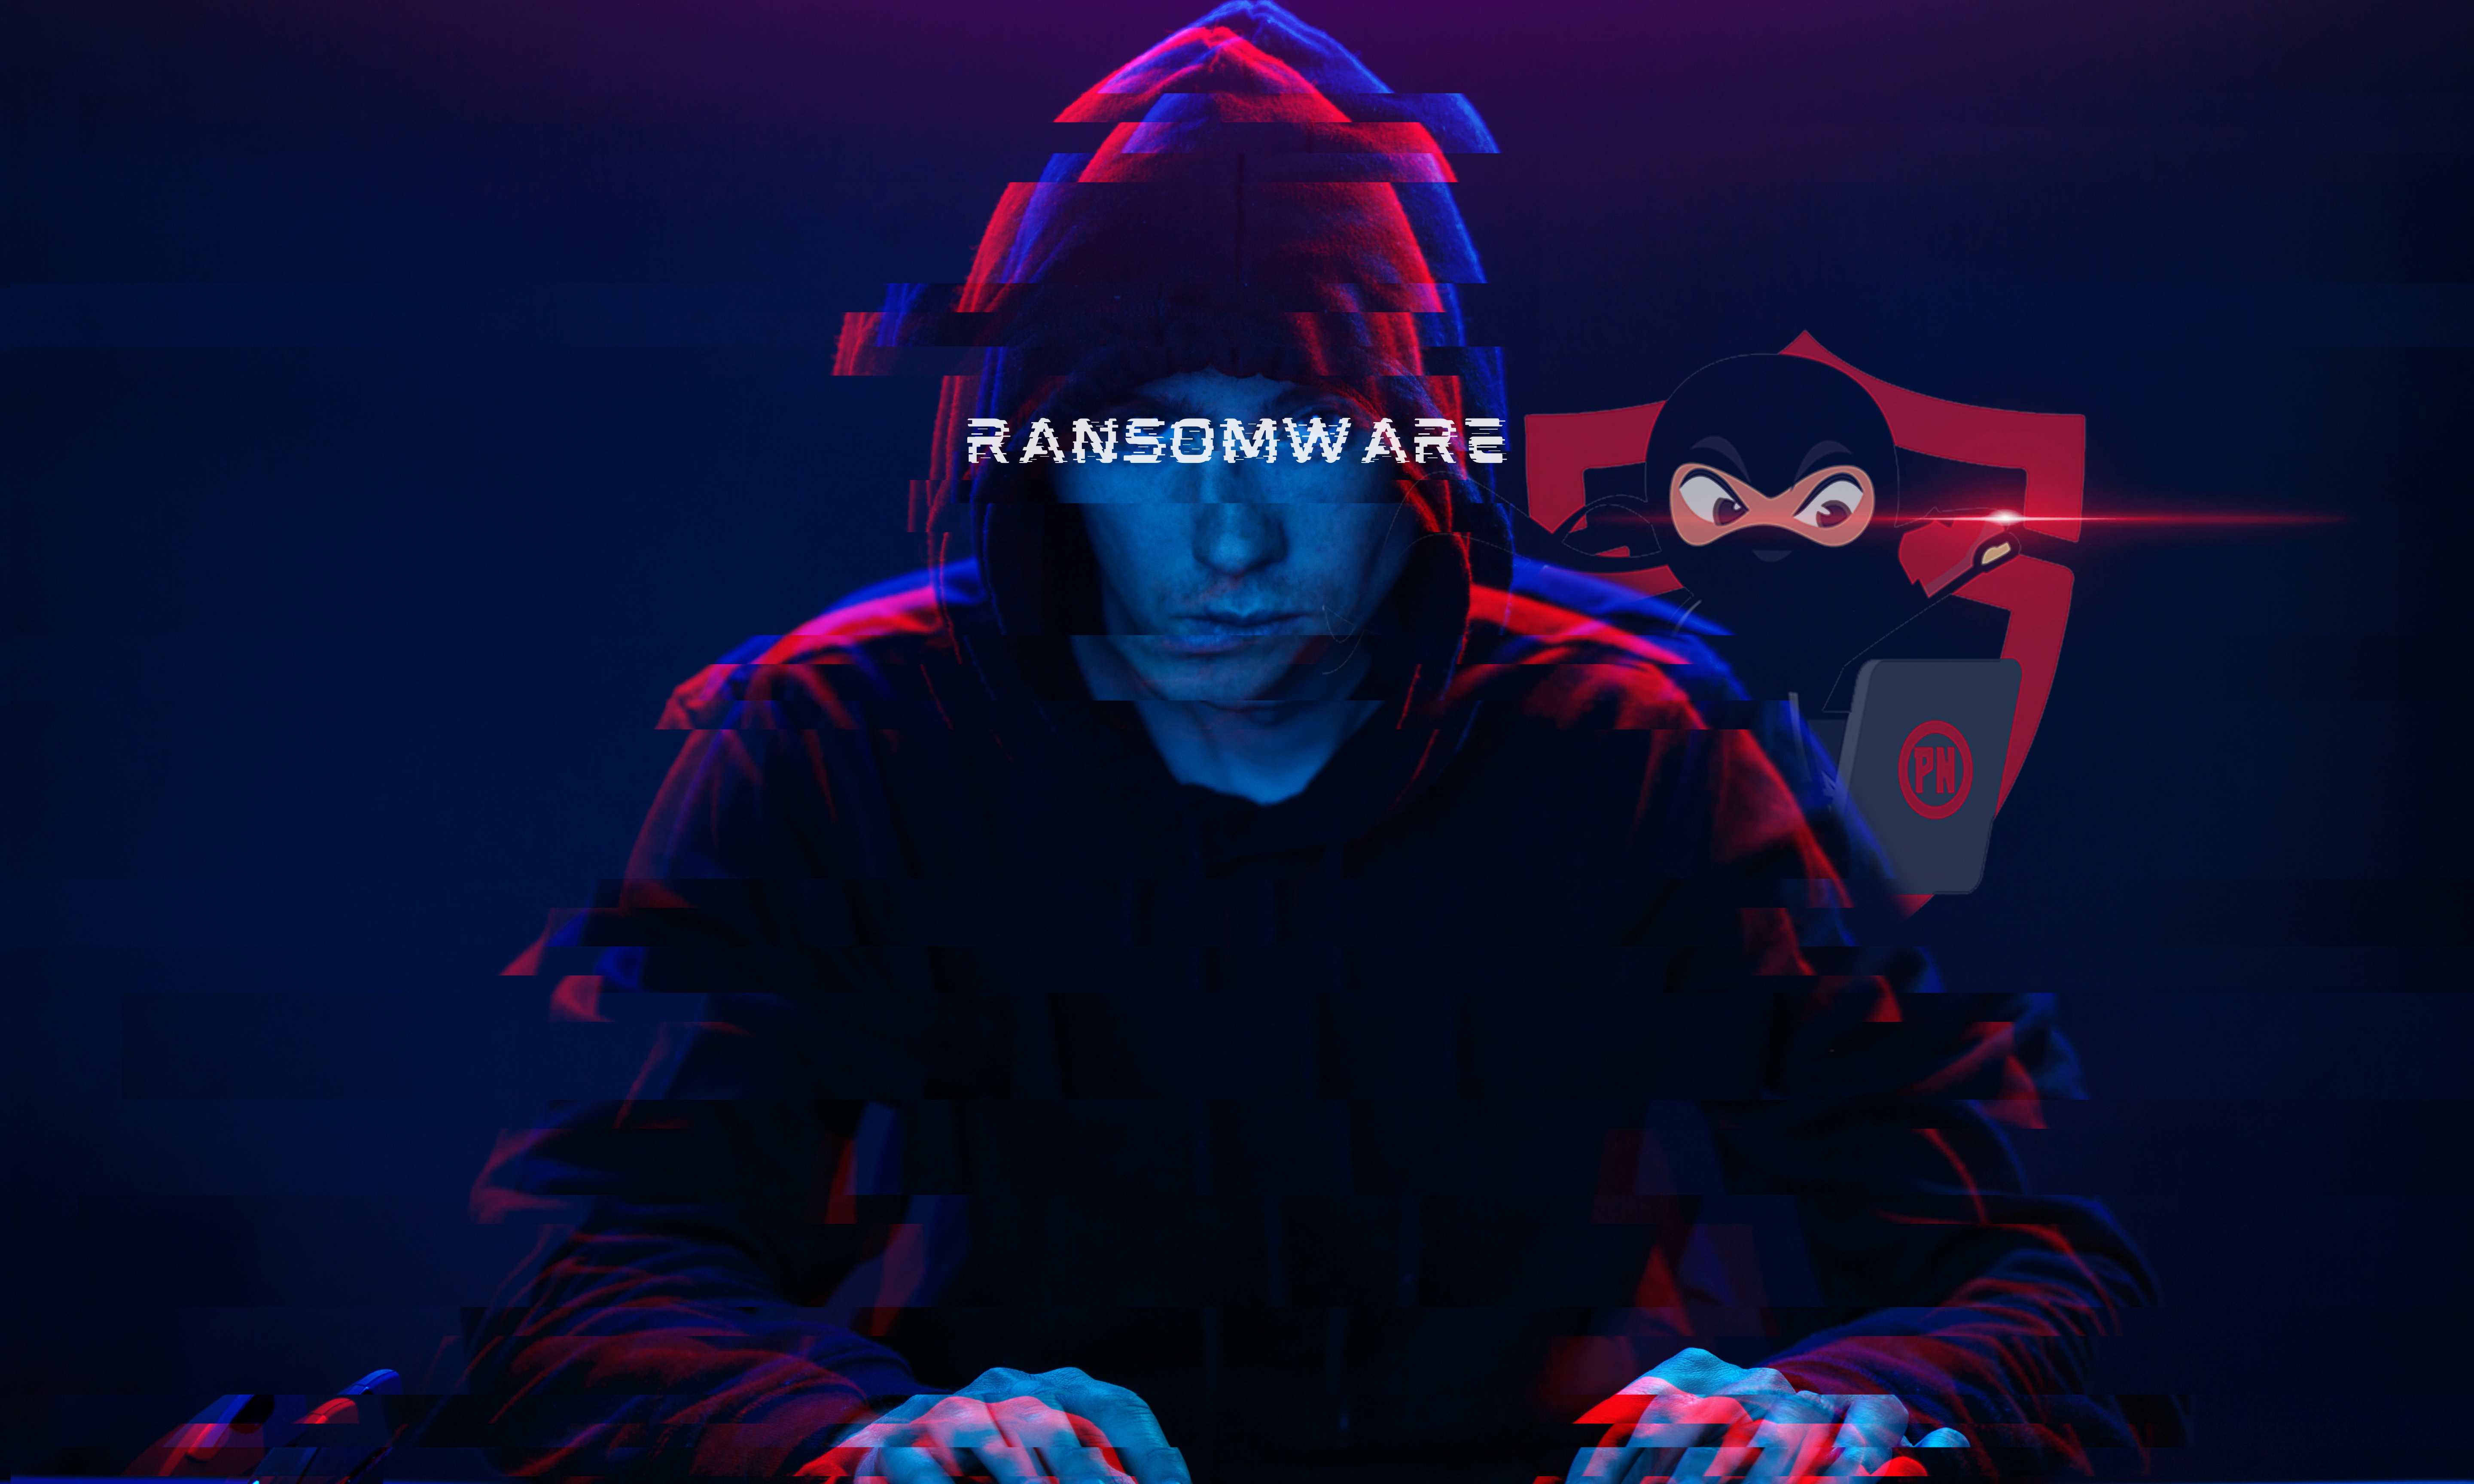 5 Most Frequently Asked Questions About Ransomware